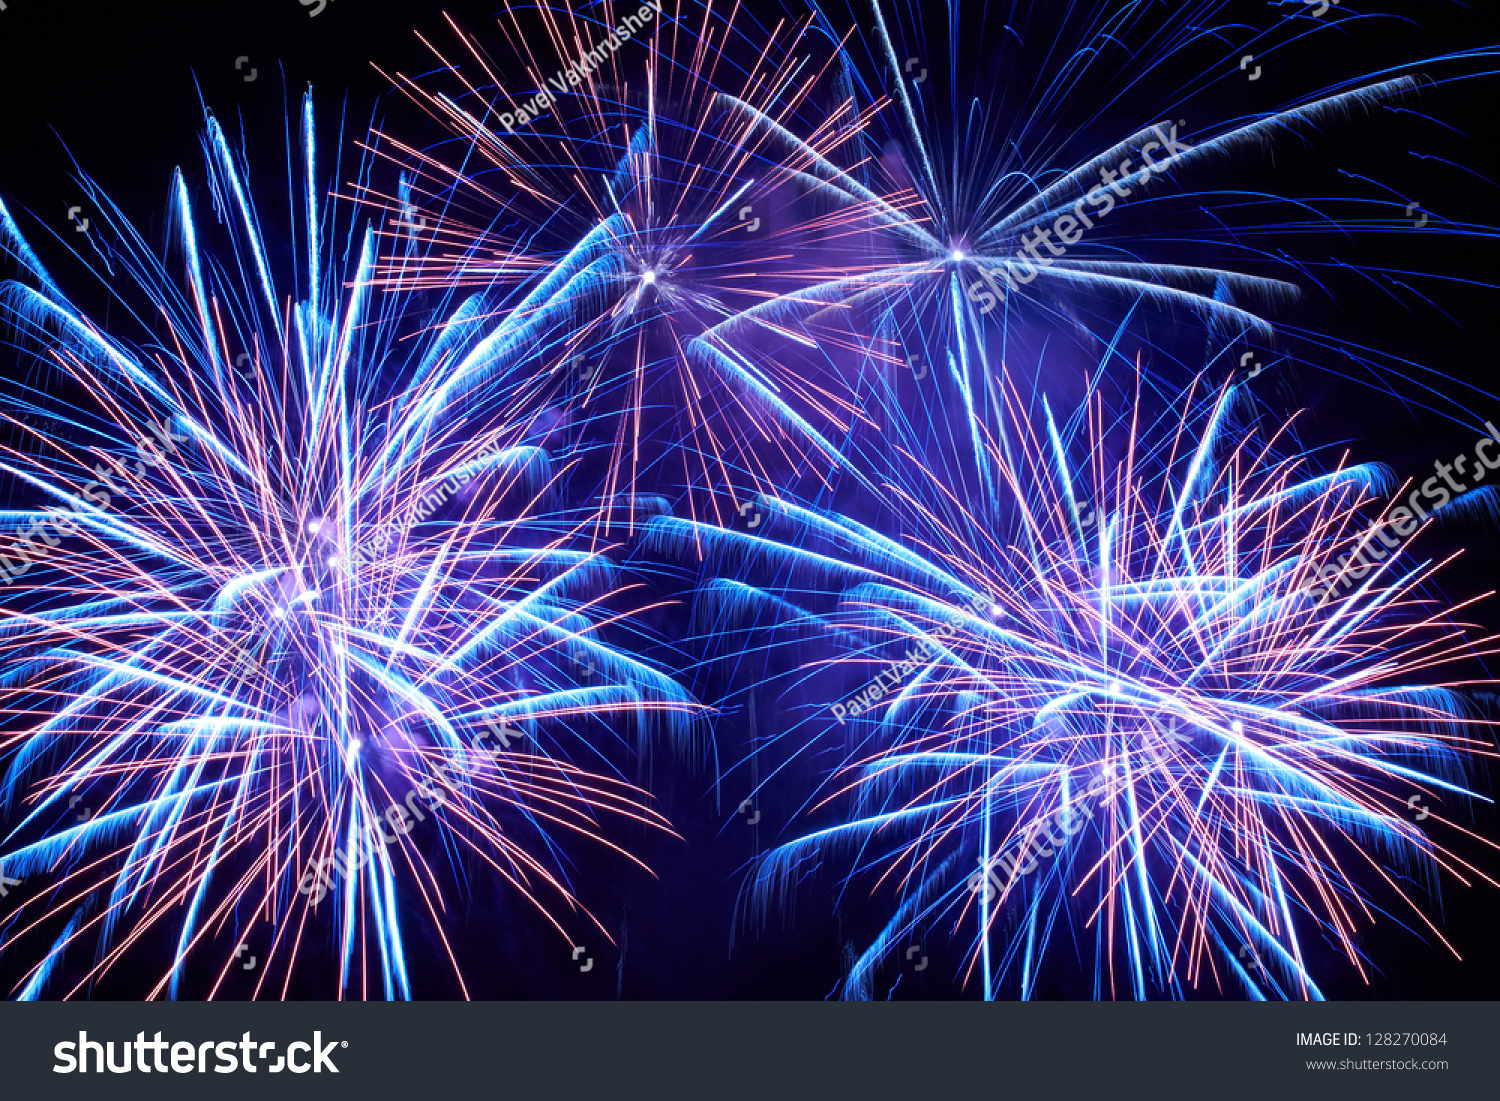 Wallpaper Salute Sky Holiday Colorful 3376x4220: Blue Colorful Fireworks On Black Sky Stock Photo 128270084